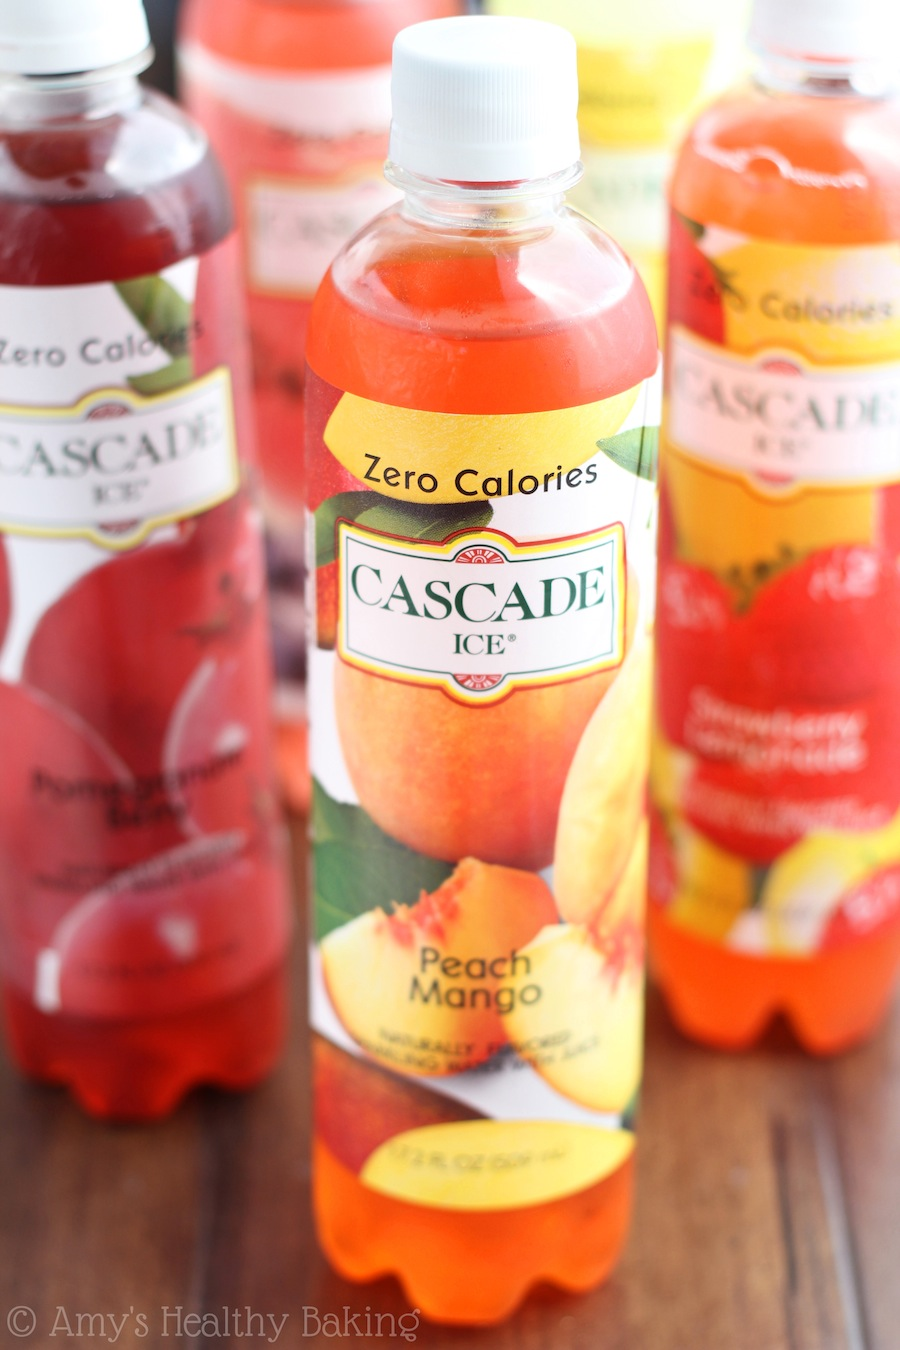 Cascade Ice Sparkling Water Giveaway on amyshealthybaking.com! Enter to win before 7/1/14!